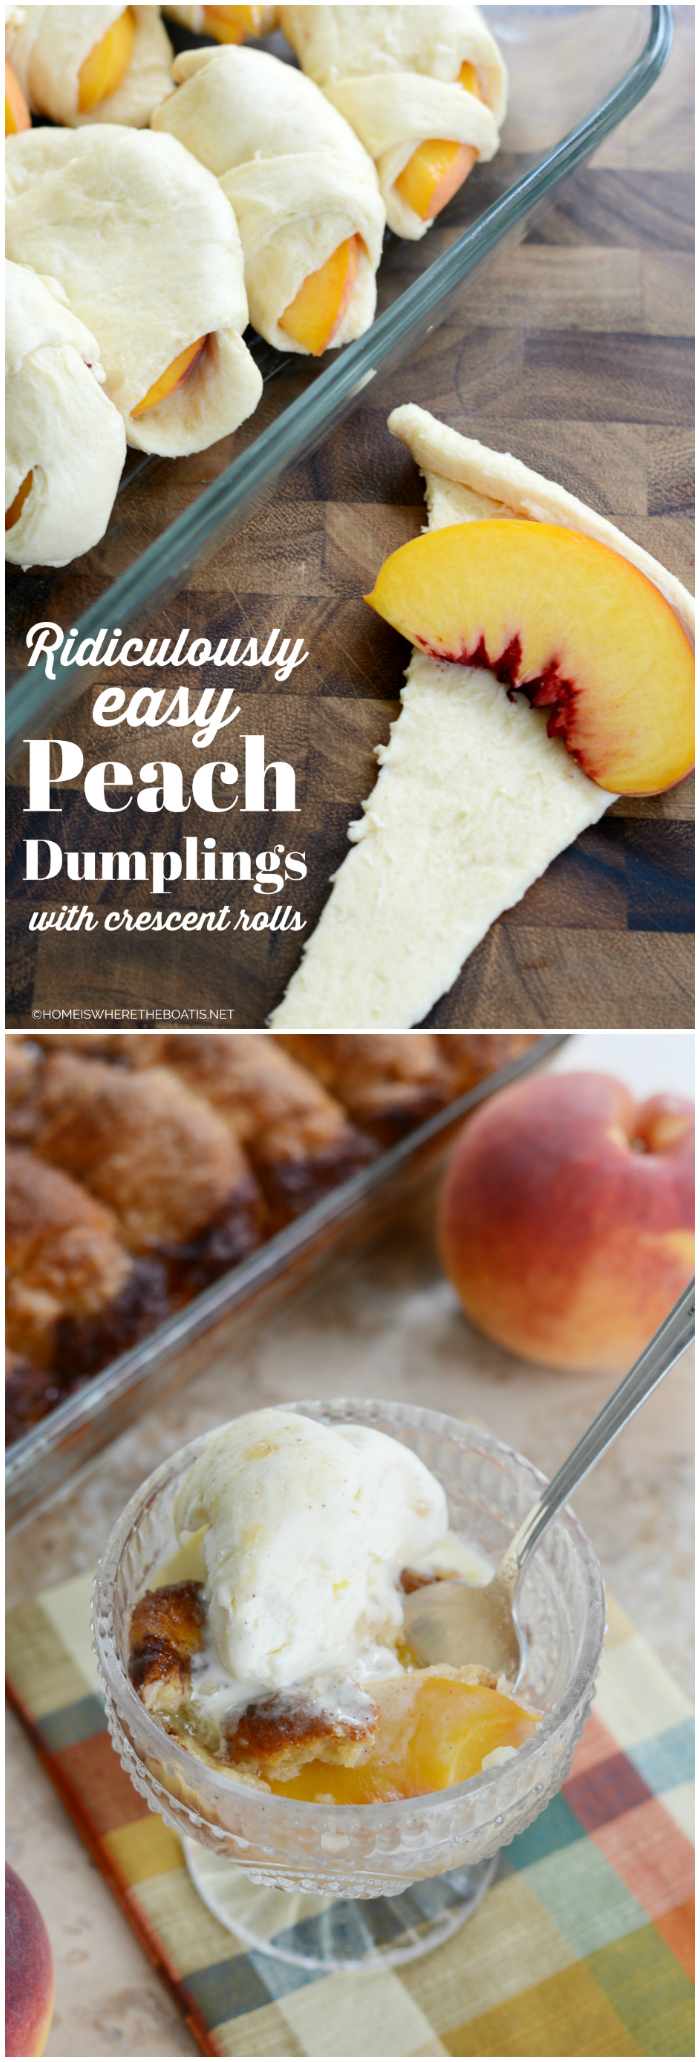 Ridiculously Easy Peach Dumplings | ©homeiswheretheboatis.net #easy #summer #peach #recipes #desserts